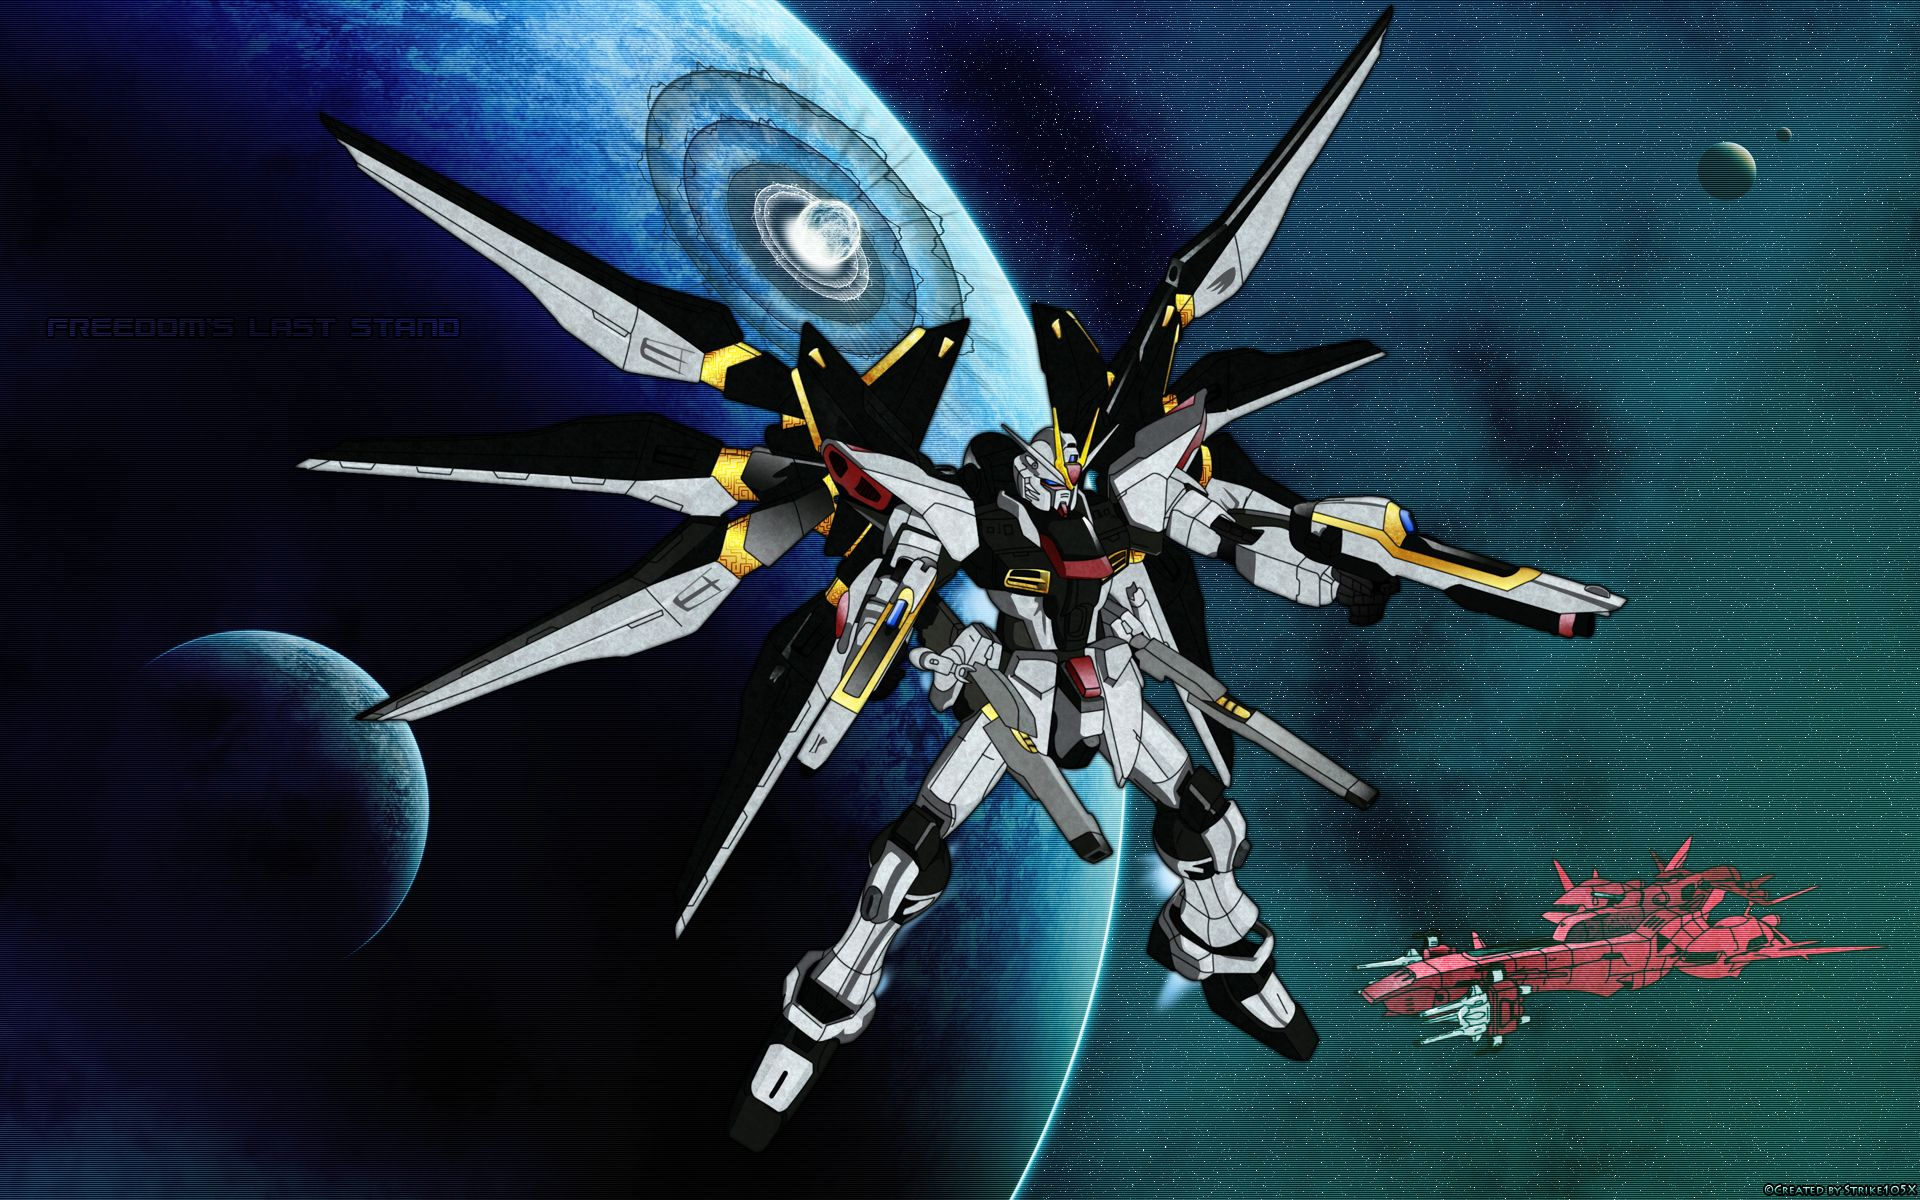 Mobile Suit Gundam SEED Destiny Wallpaper: Freedom's Last Stand